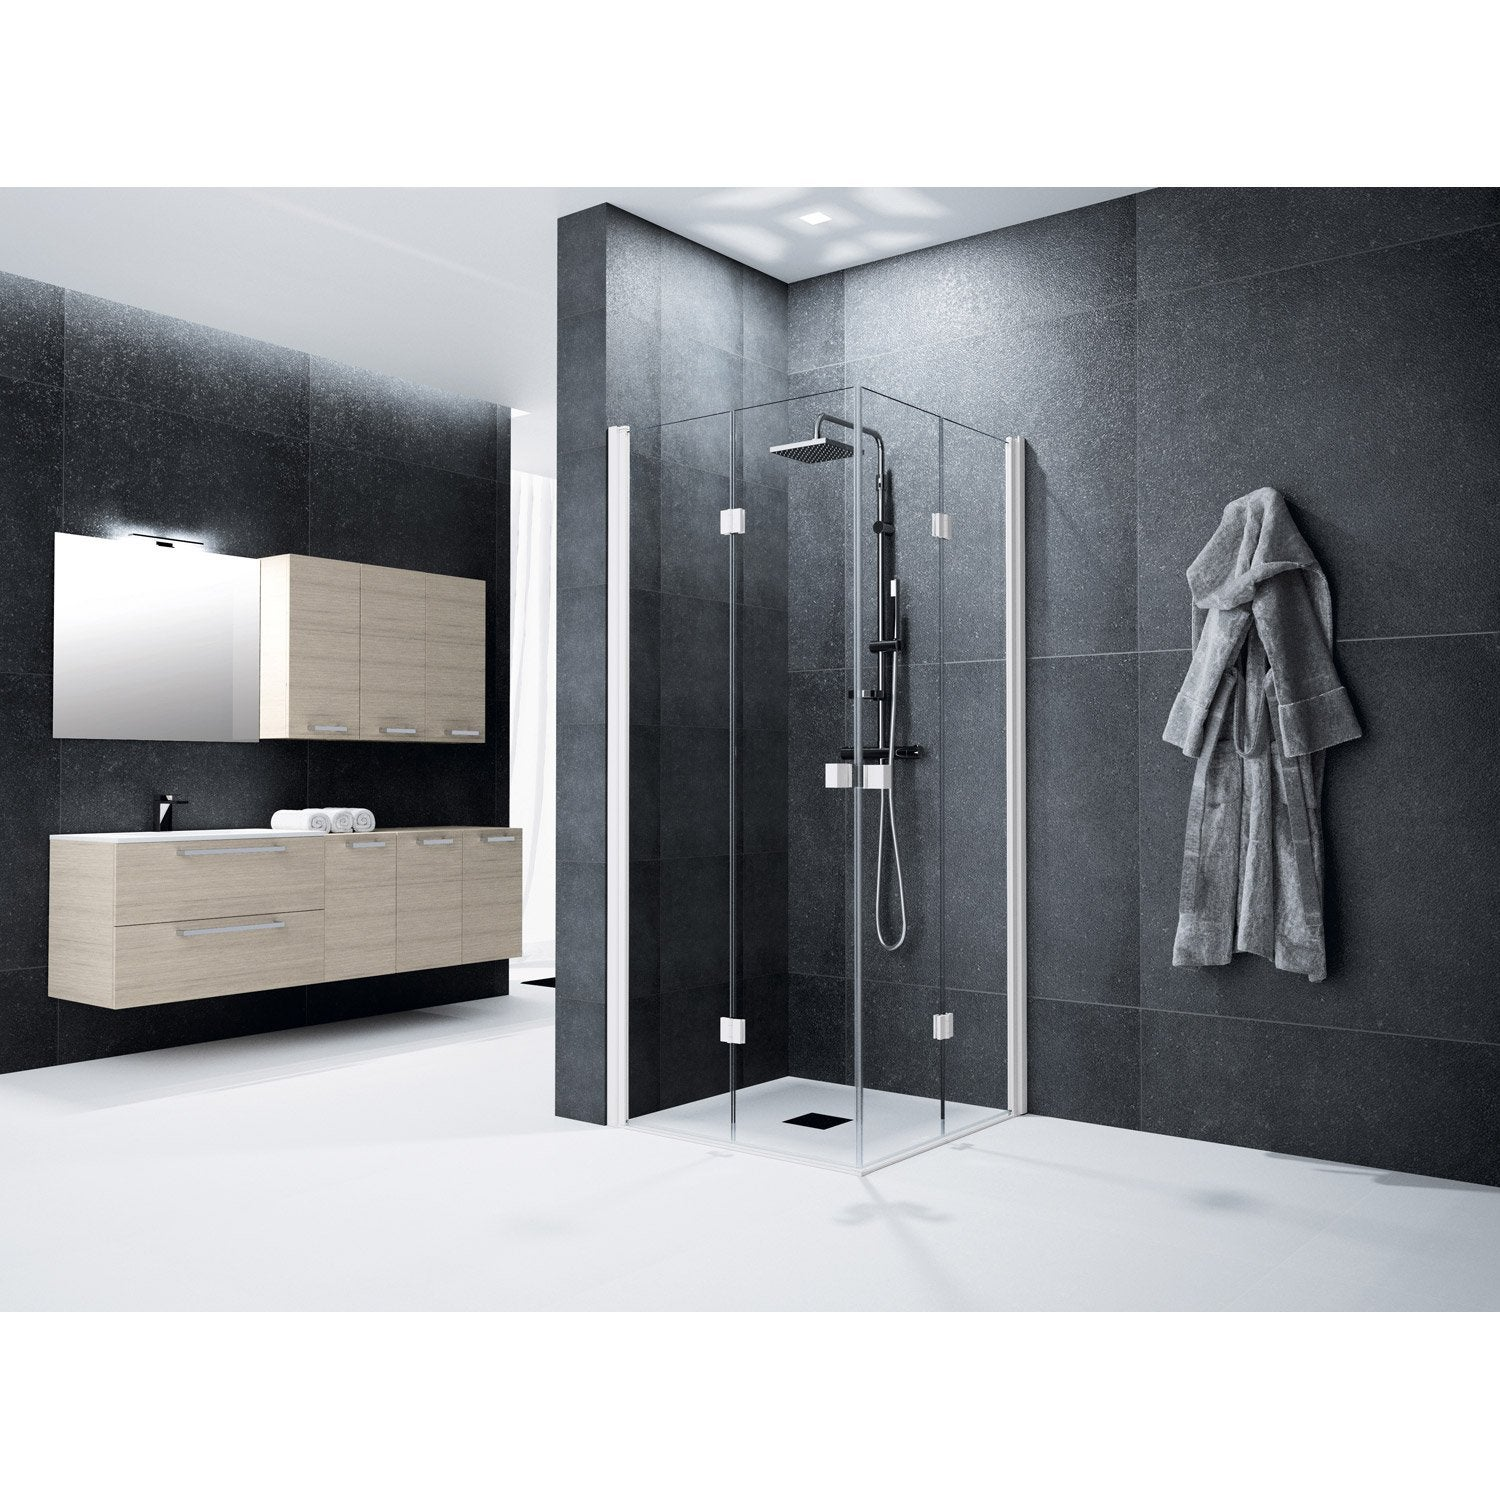 porte douche 100 pas cher avec leroy merlin brico depot. Black Bedroom Furniture Sets. Home Design Ideas